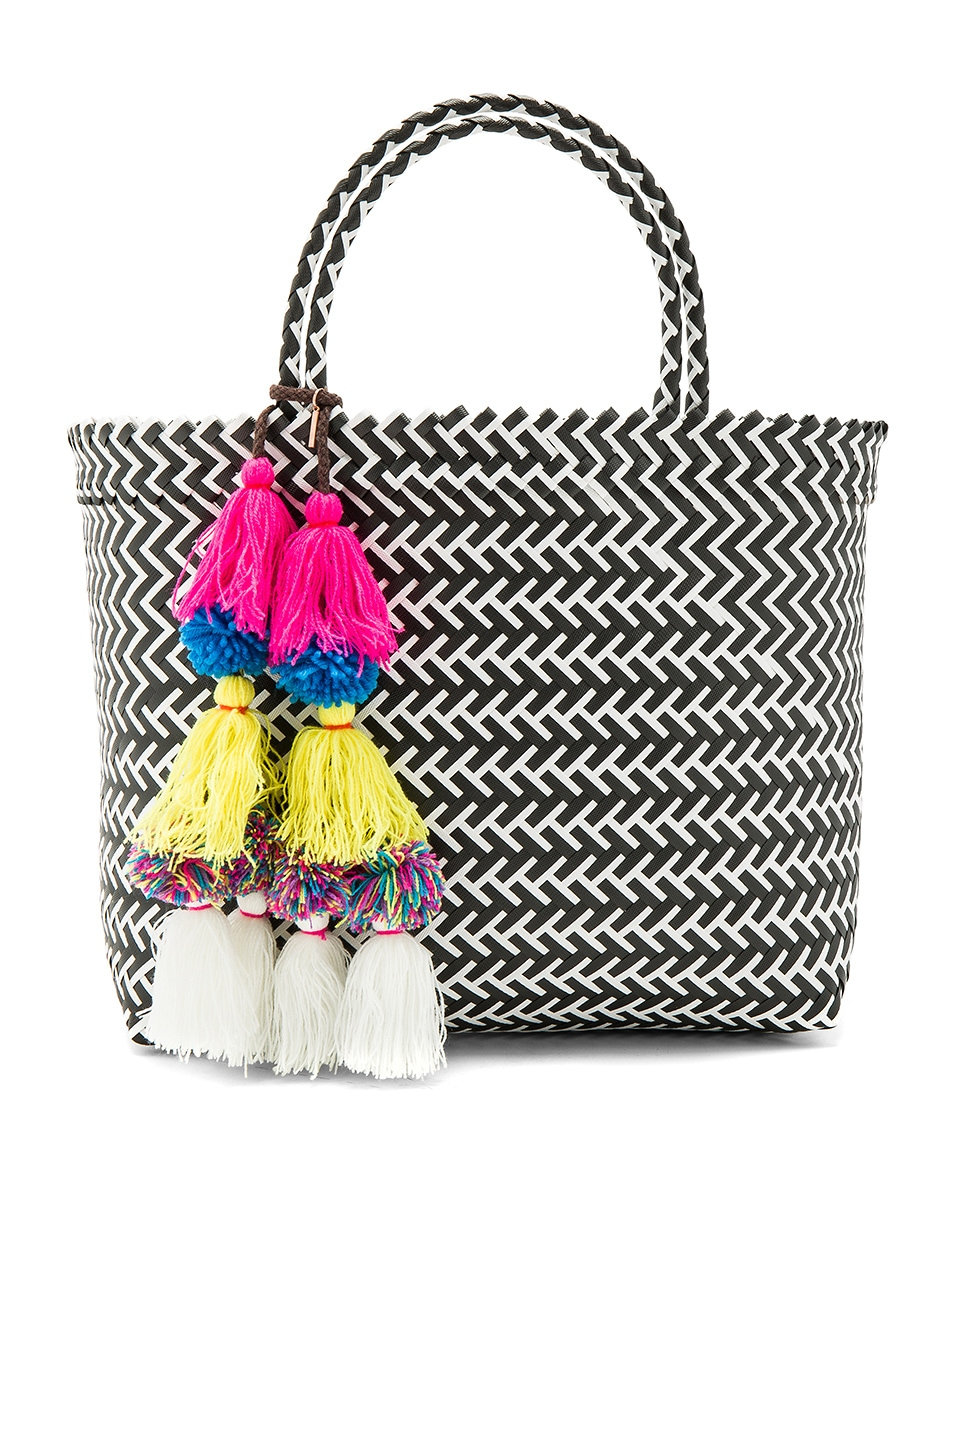 MISA Los Angeles Mercado Tote in Black Multi